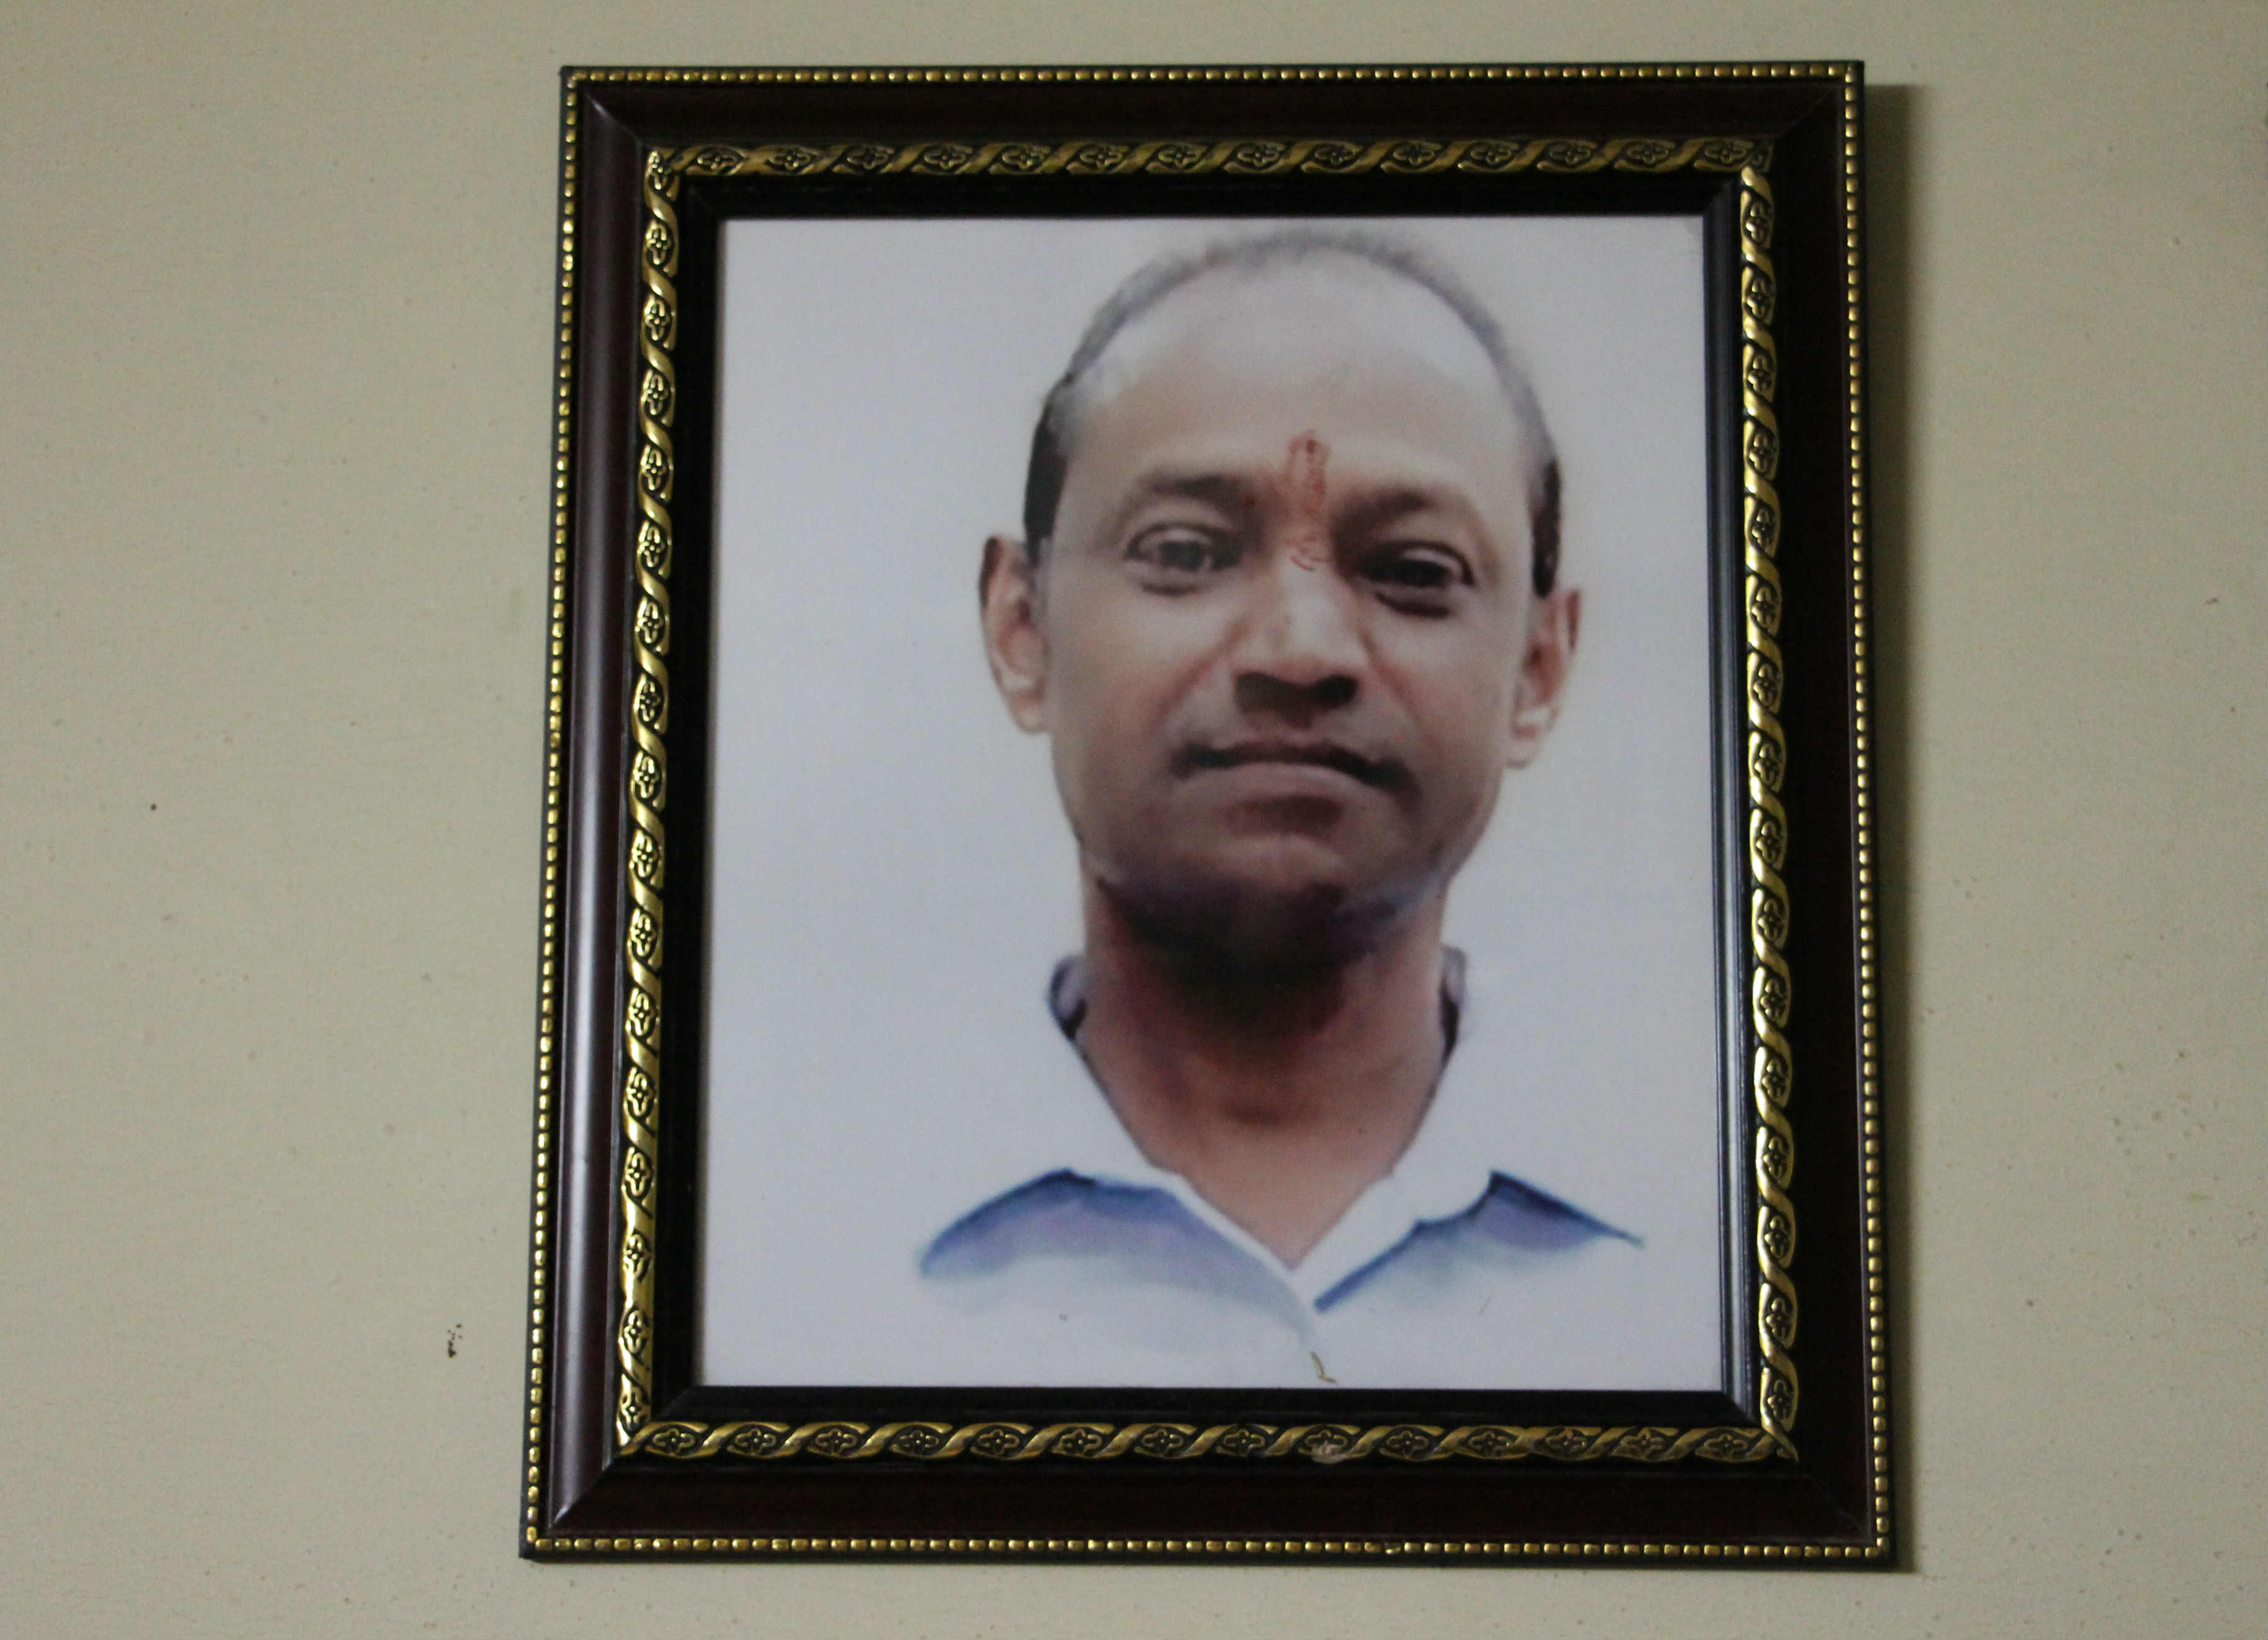 A portrait of Ravinder Kanojia hangs in his home in Ghazipur, Delhi. Photo credit: Aabid Shafi